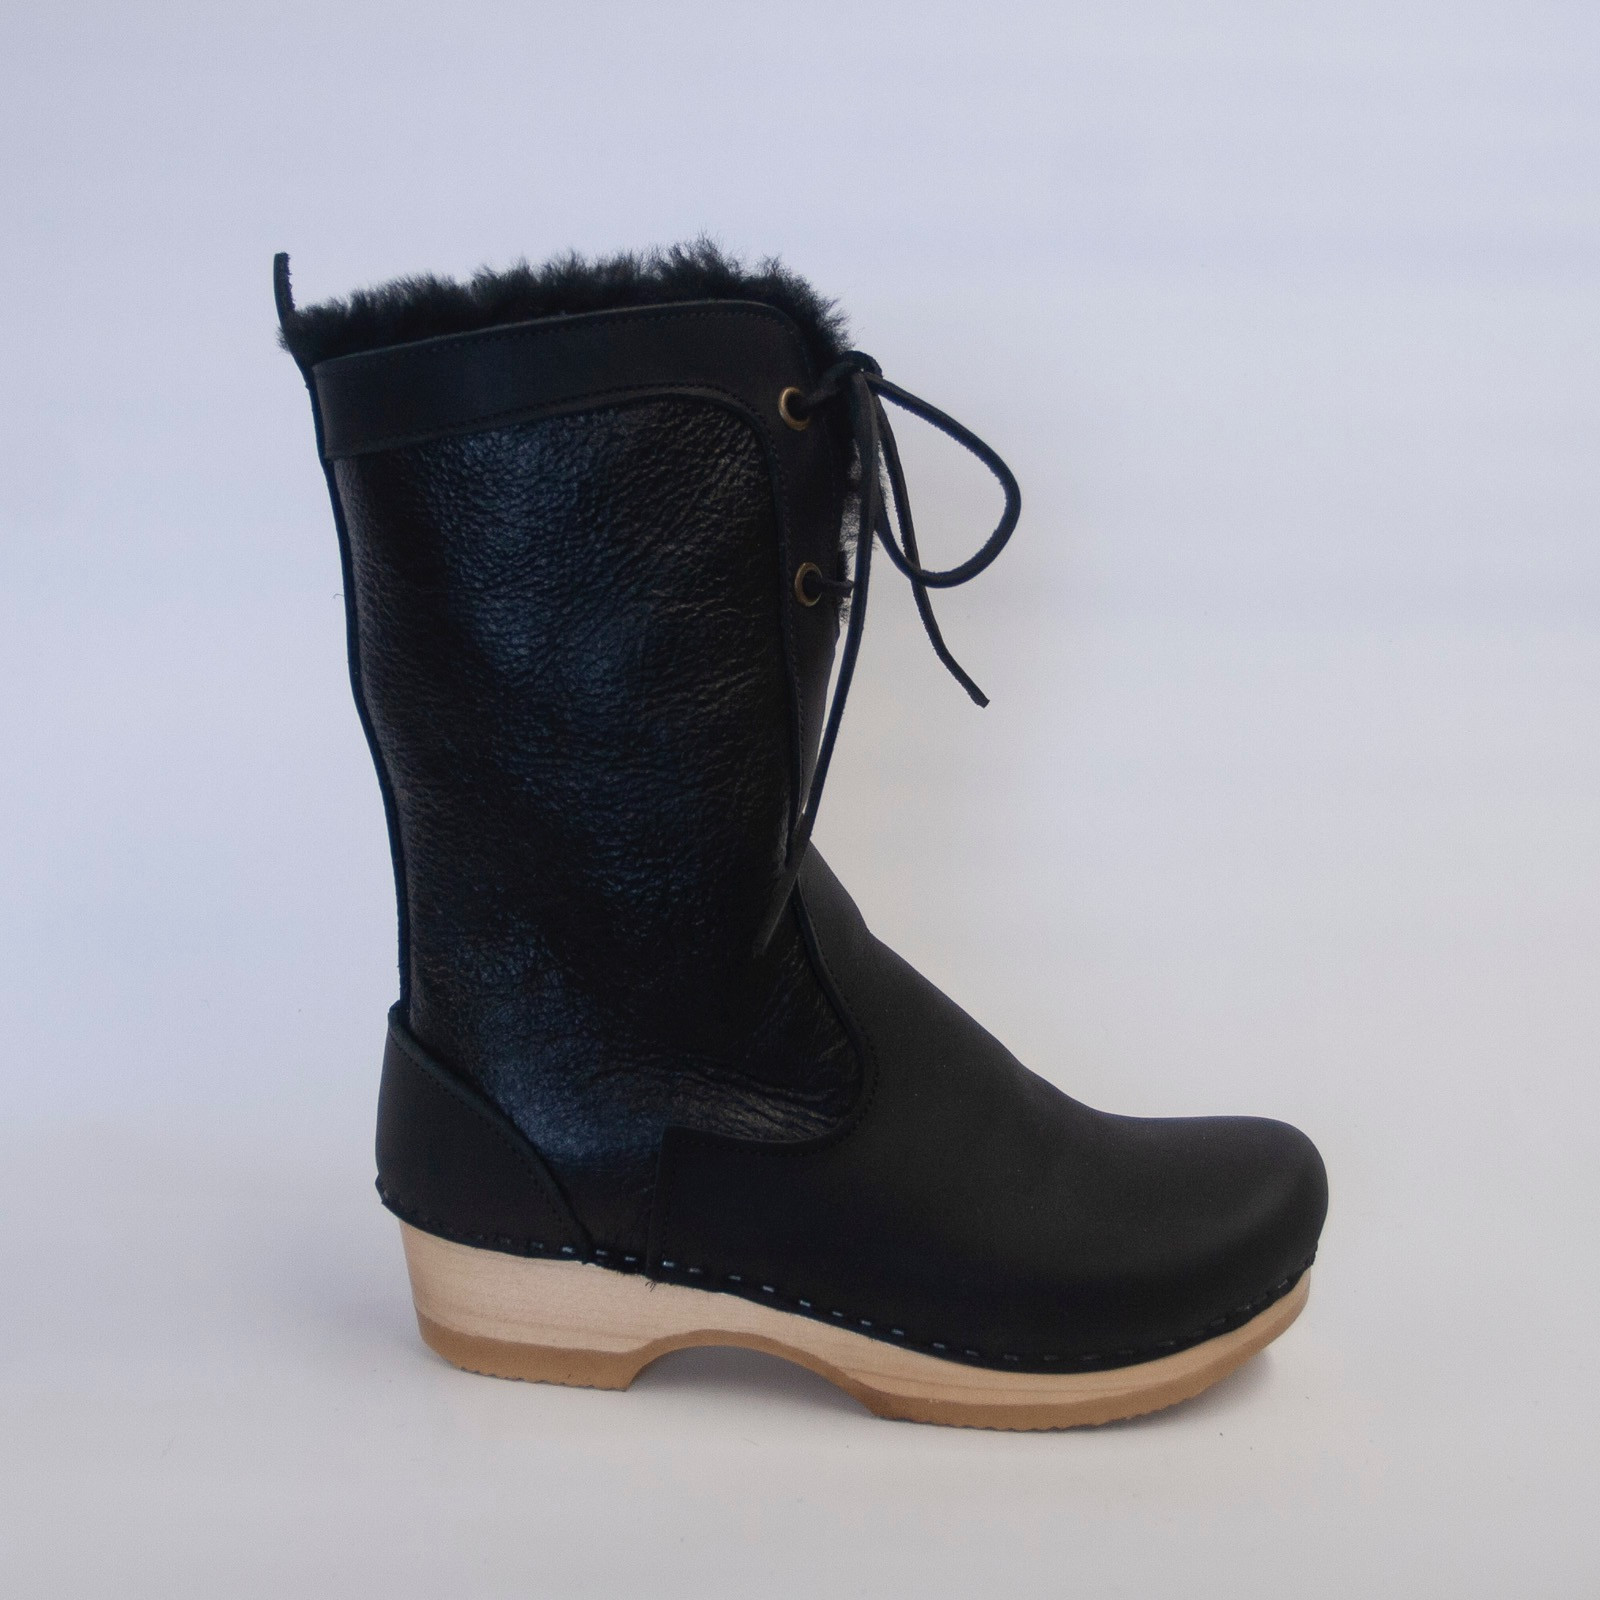 Black Aviator - Lace Up Shearling Clog Boots